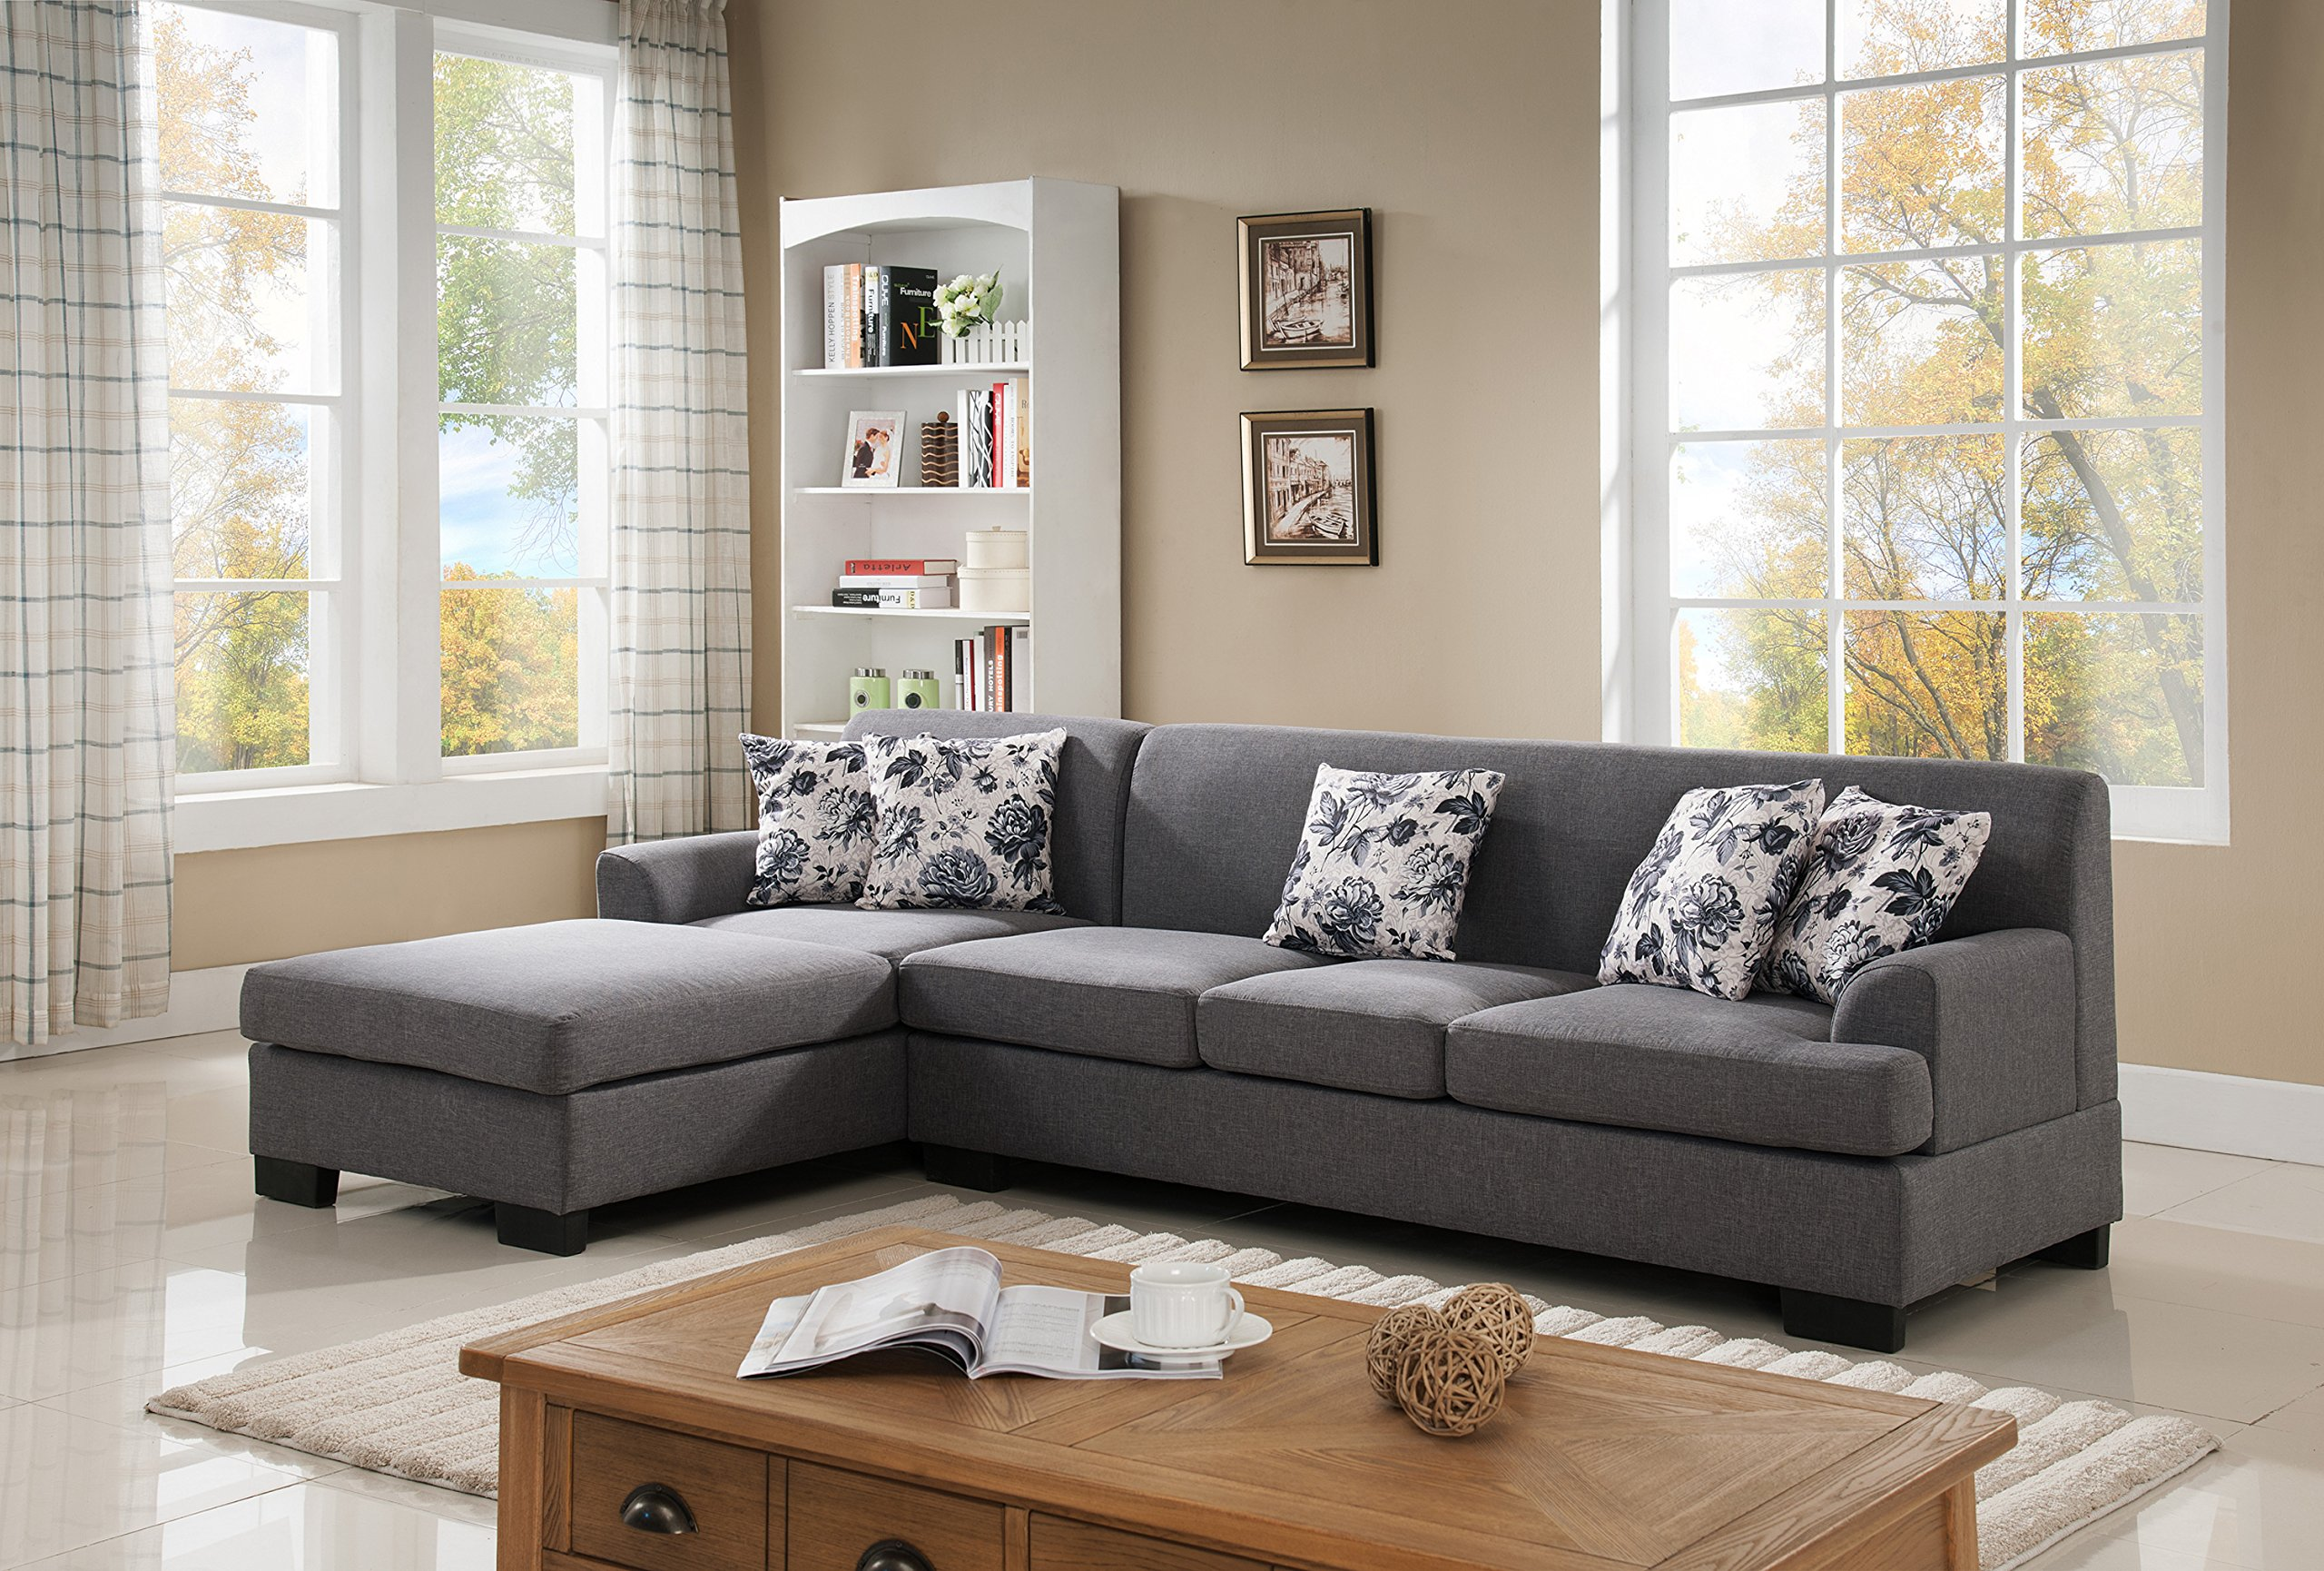 Sofa Set On Sale Cheap Modern Sofa Set For Sale Find Modern Sofa Set For Sale